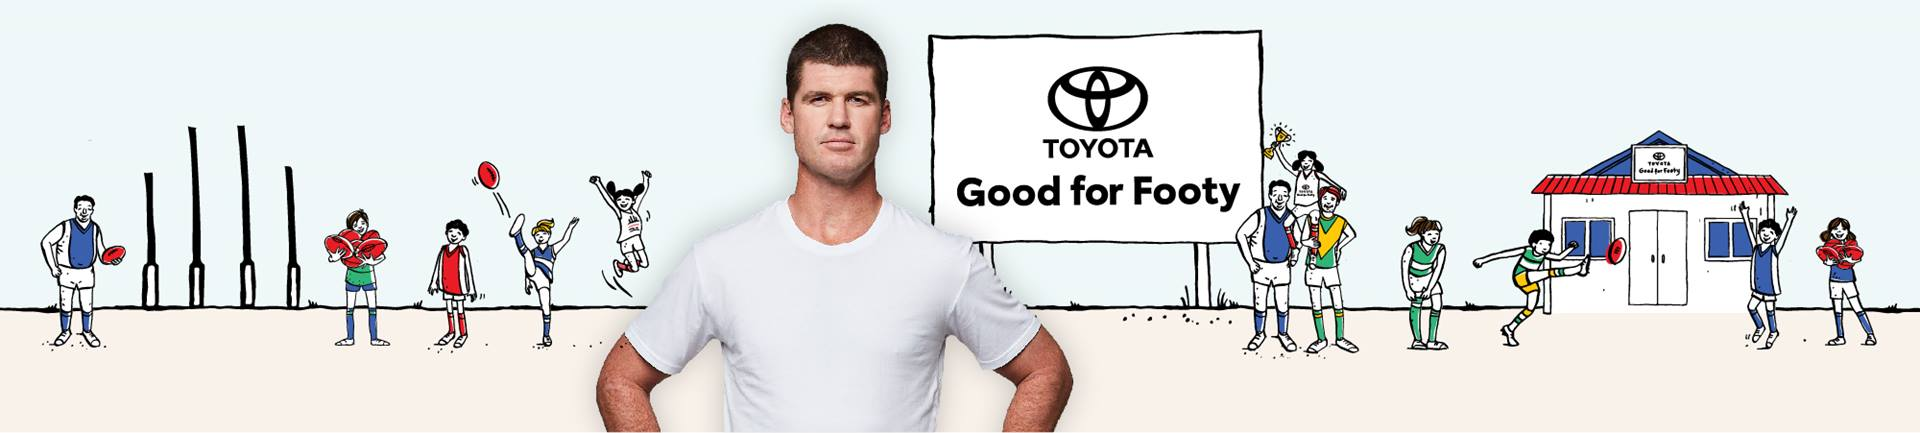 Toyota Good for Footy Raffle